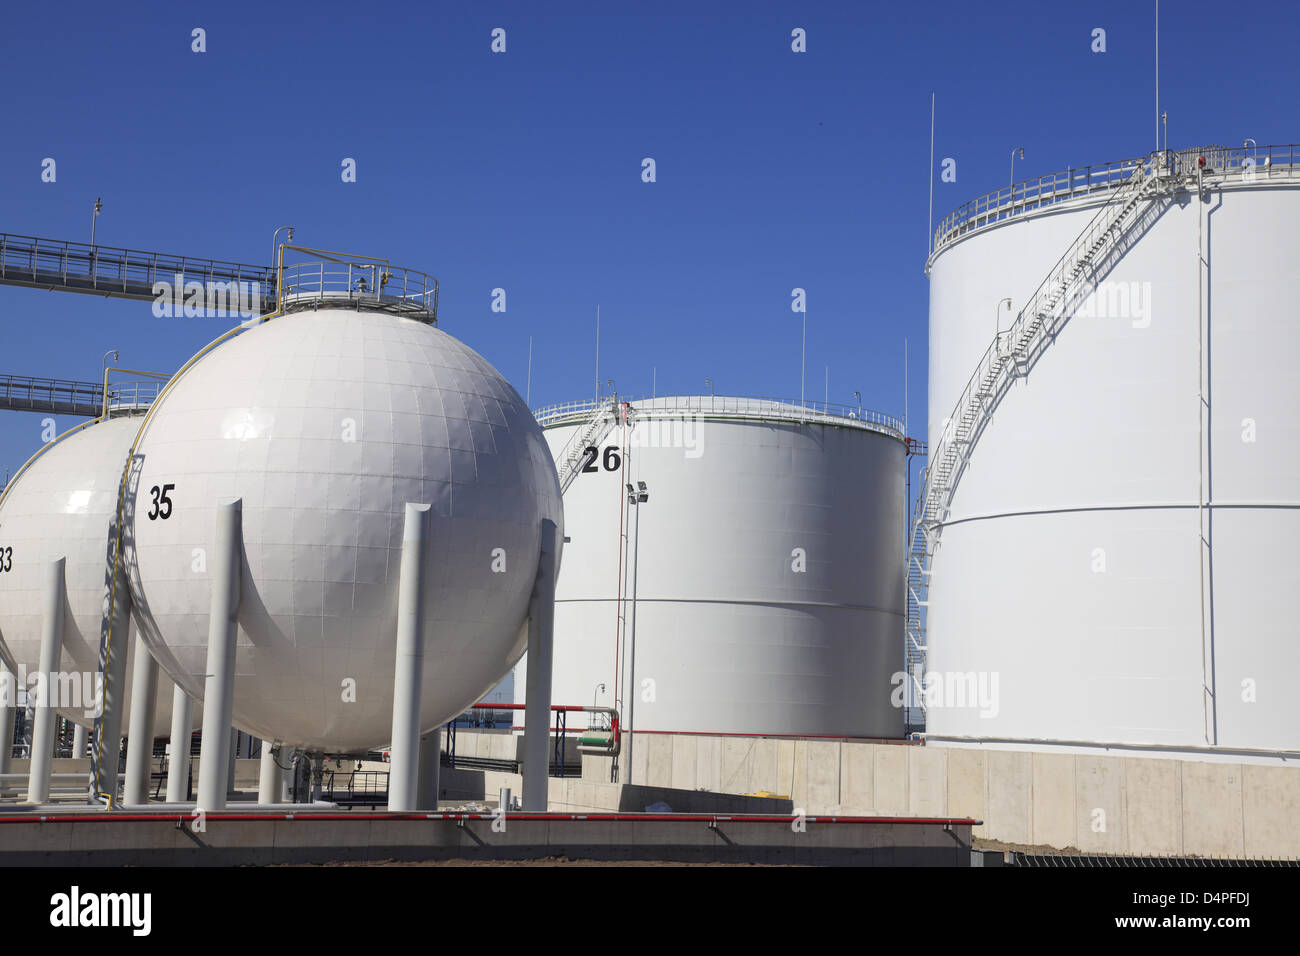 Large oil and gas tanks are pictured in the industrial harbour of Paldiski near Tallinn, Estonia, June 2009. Photo: - Stock Image